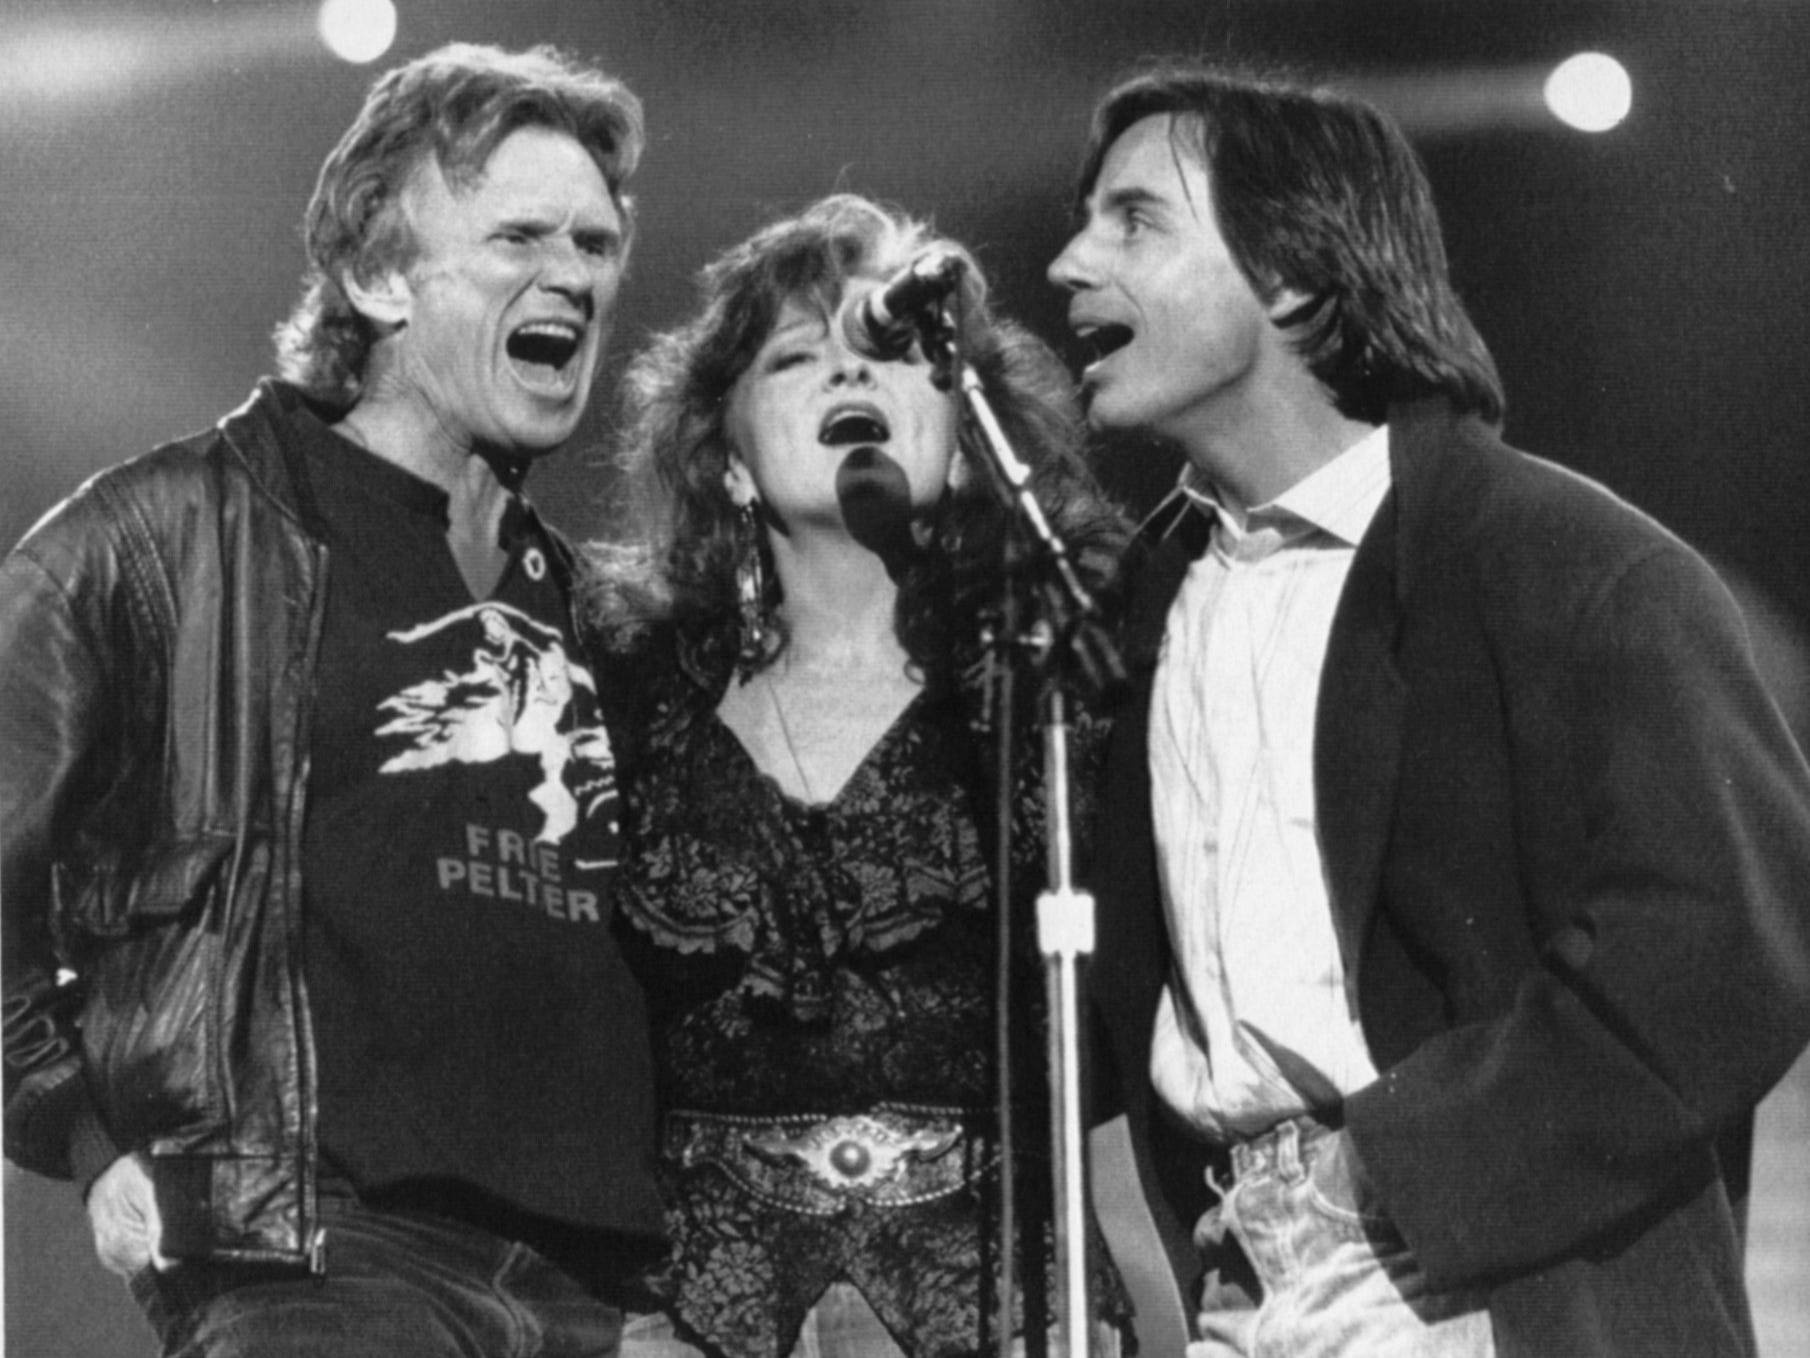 Kris Kristofferson, Bonnie Raitt and Jackson Browne (from left) perform during Farm Aid IV in Indianapolis April 7, 1990.